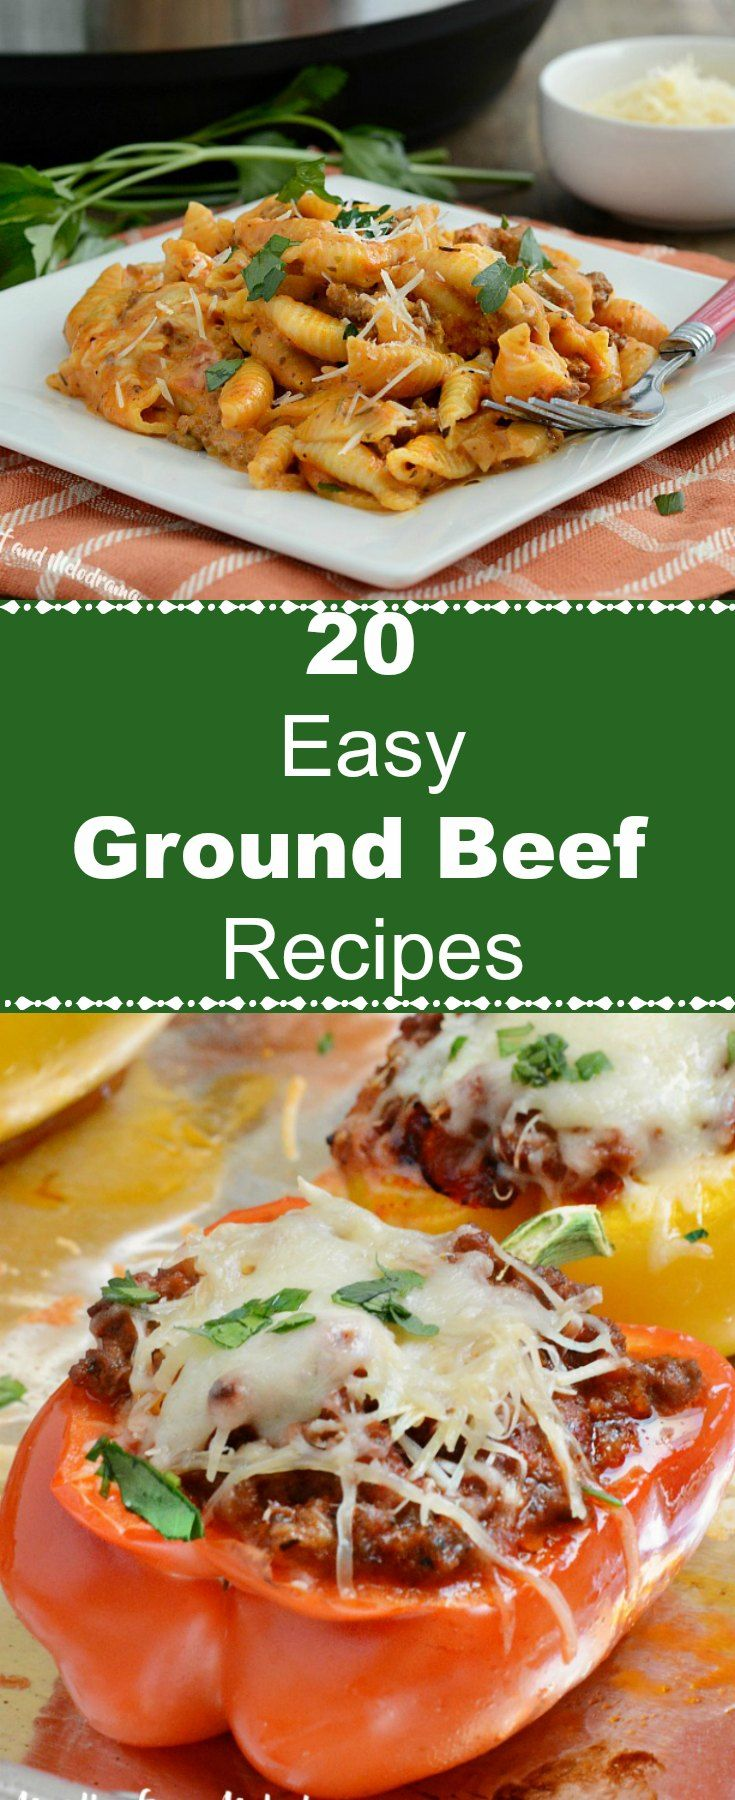 20 Easy Ground Beef Recipes - Meatloaf and Melodrama